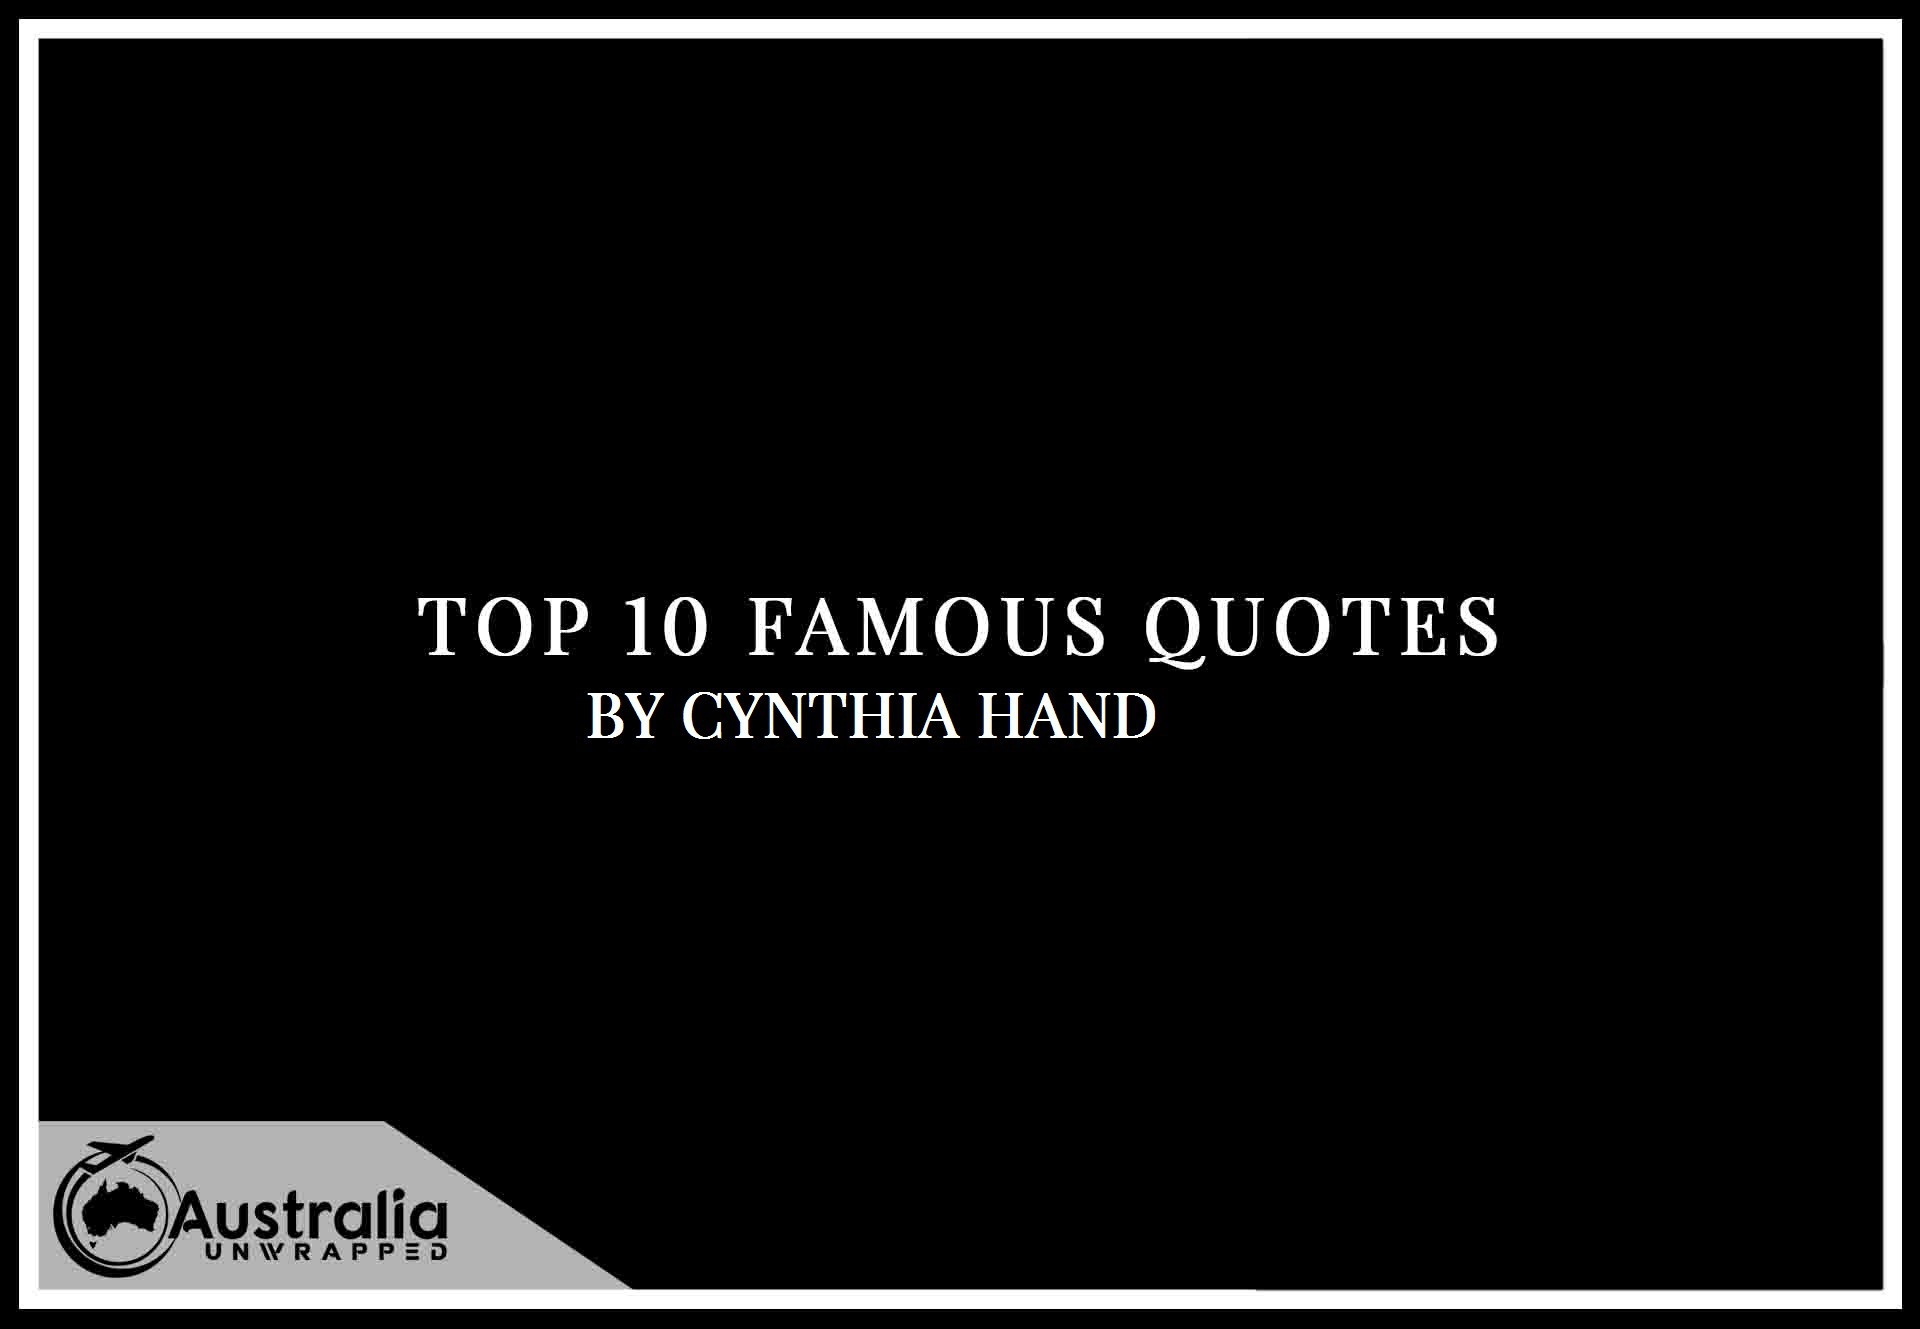 Cynthia Hand's Top 10 Popular and Famous Quotes